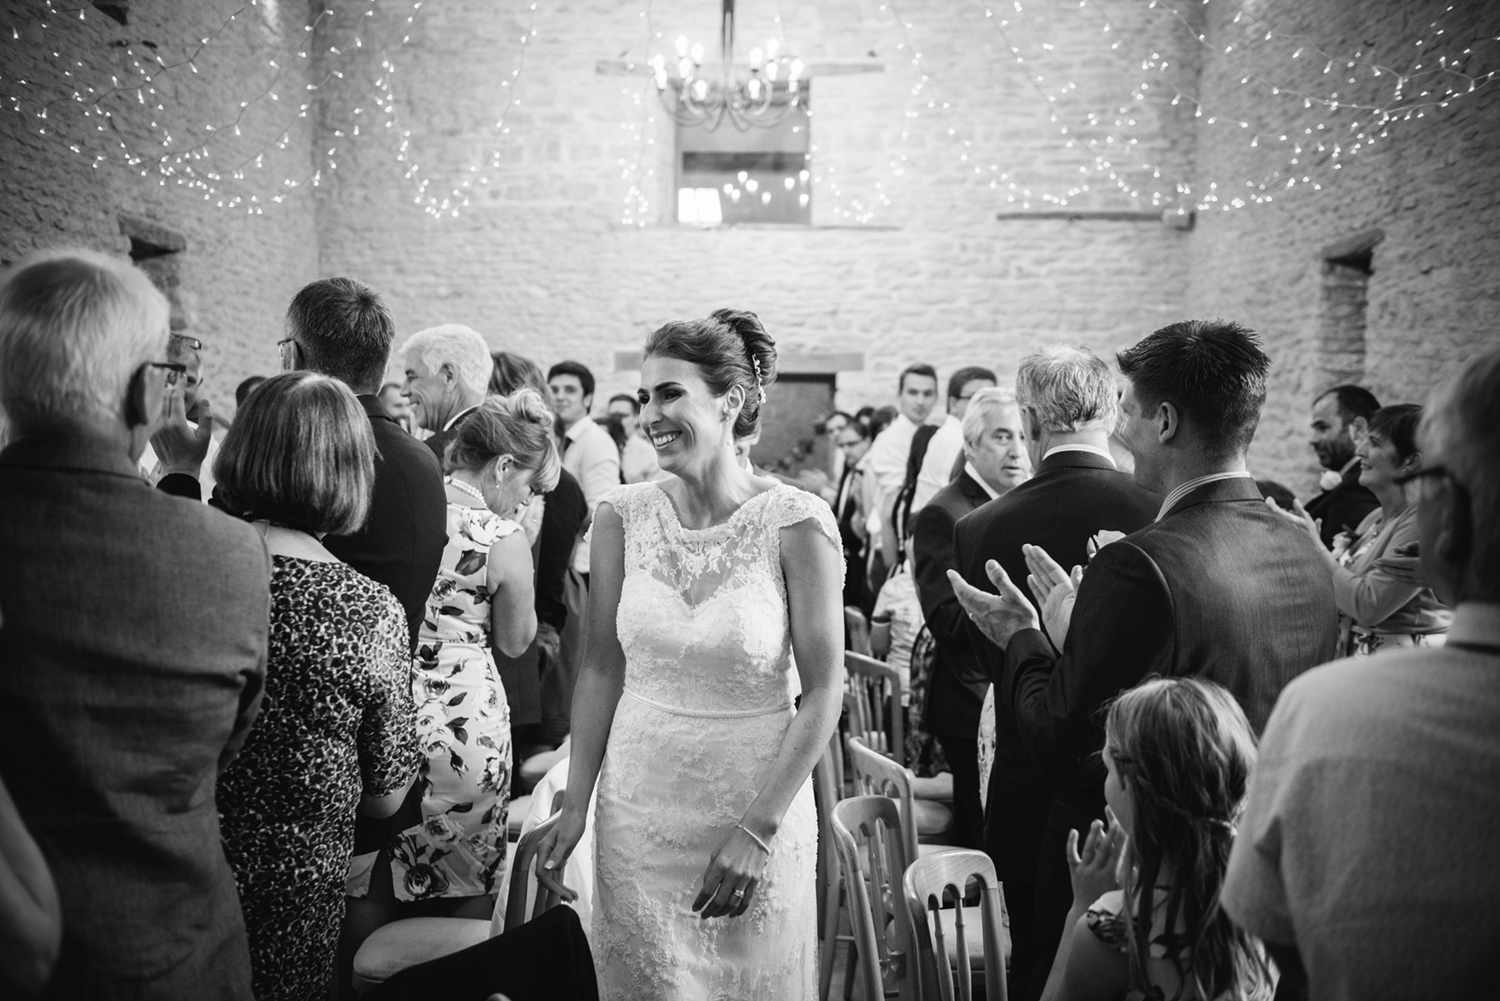 Kingscote-Barn-Wedding-Photographer-88.jpg